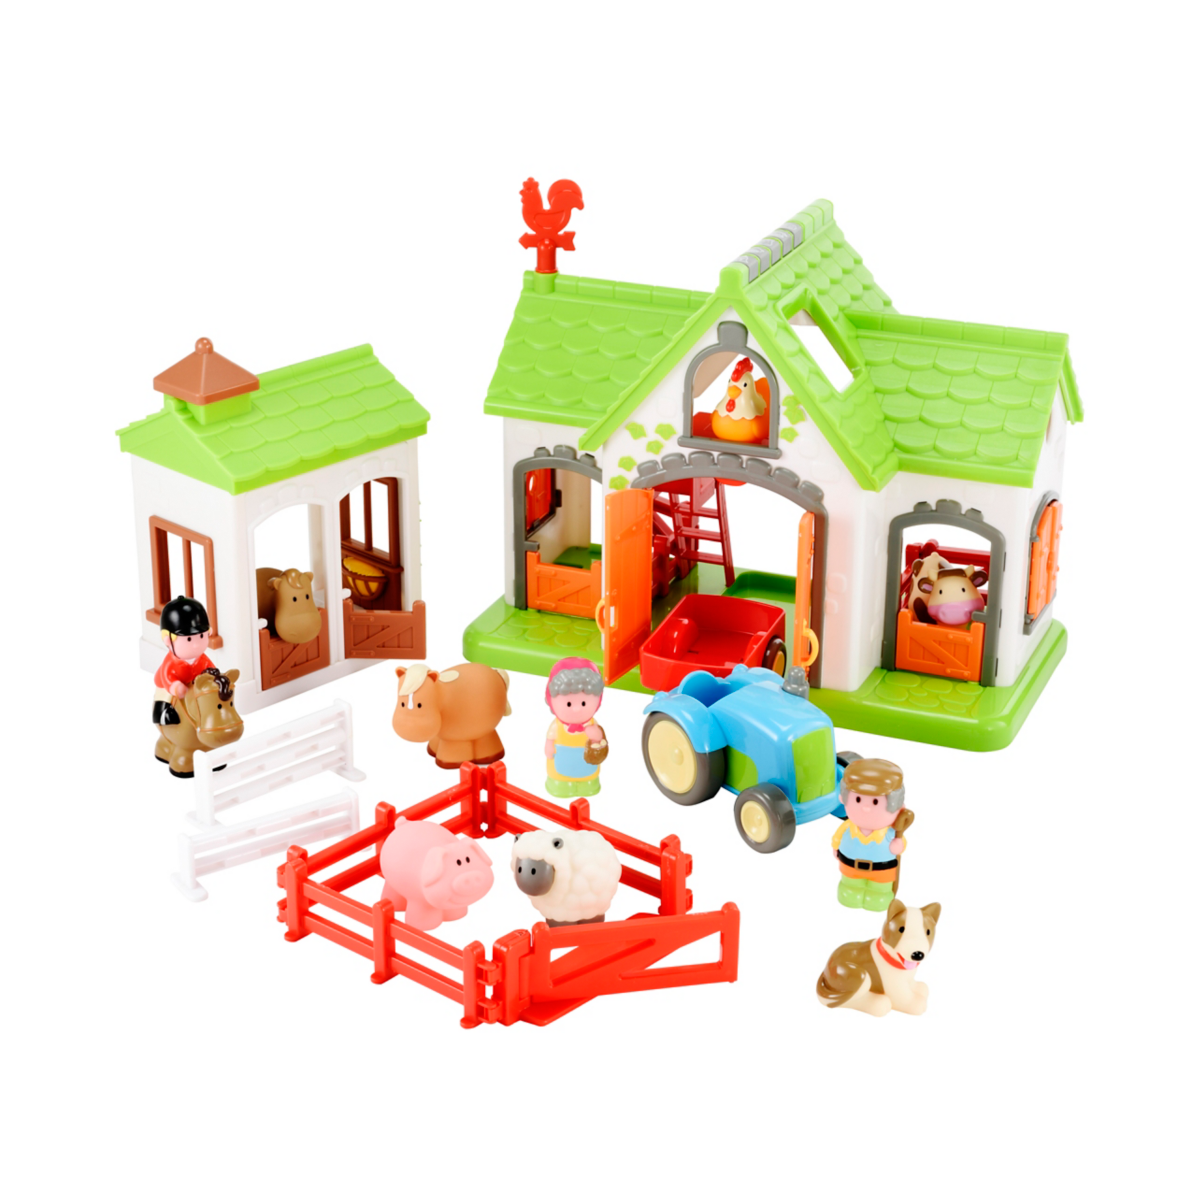 Happyland Farm from Early Learning Center